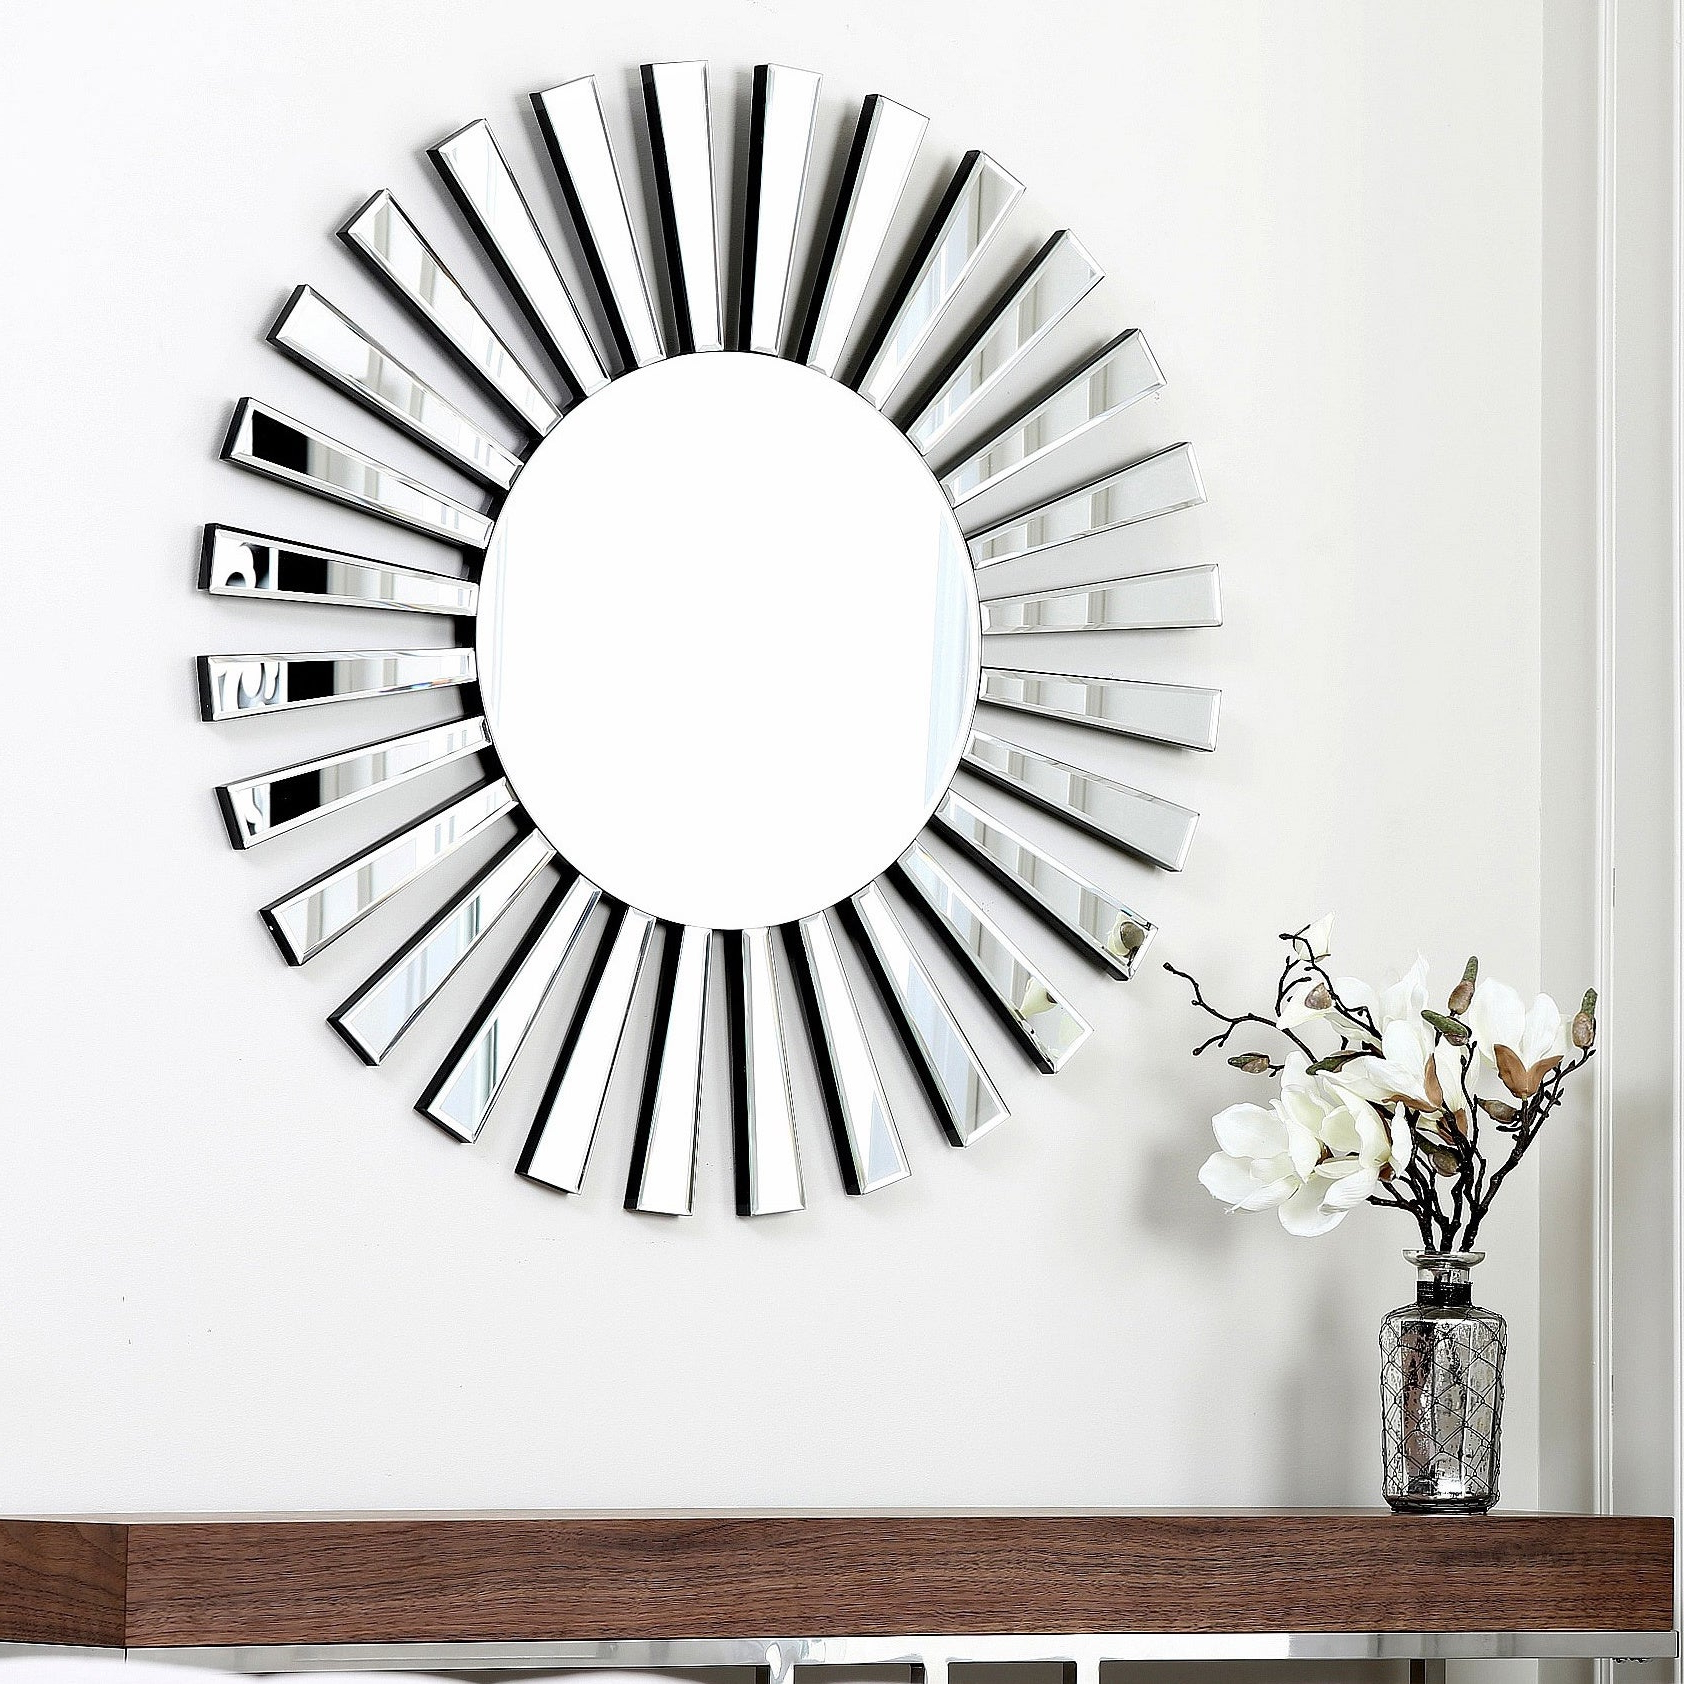 Abbyson Living Soleil Round Wall Mirror Within Newest Soleil Wall Mirrors (View 3 of 20)